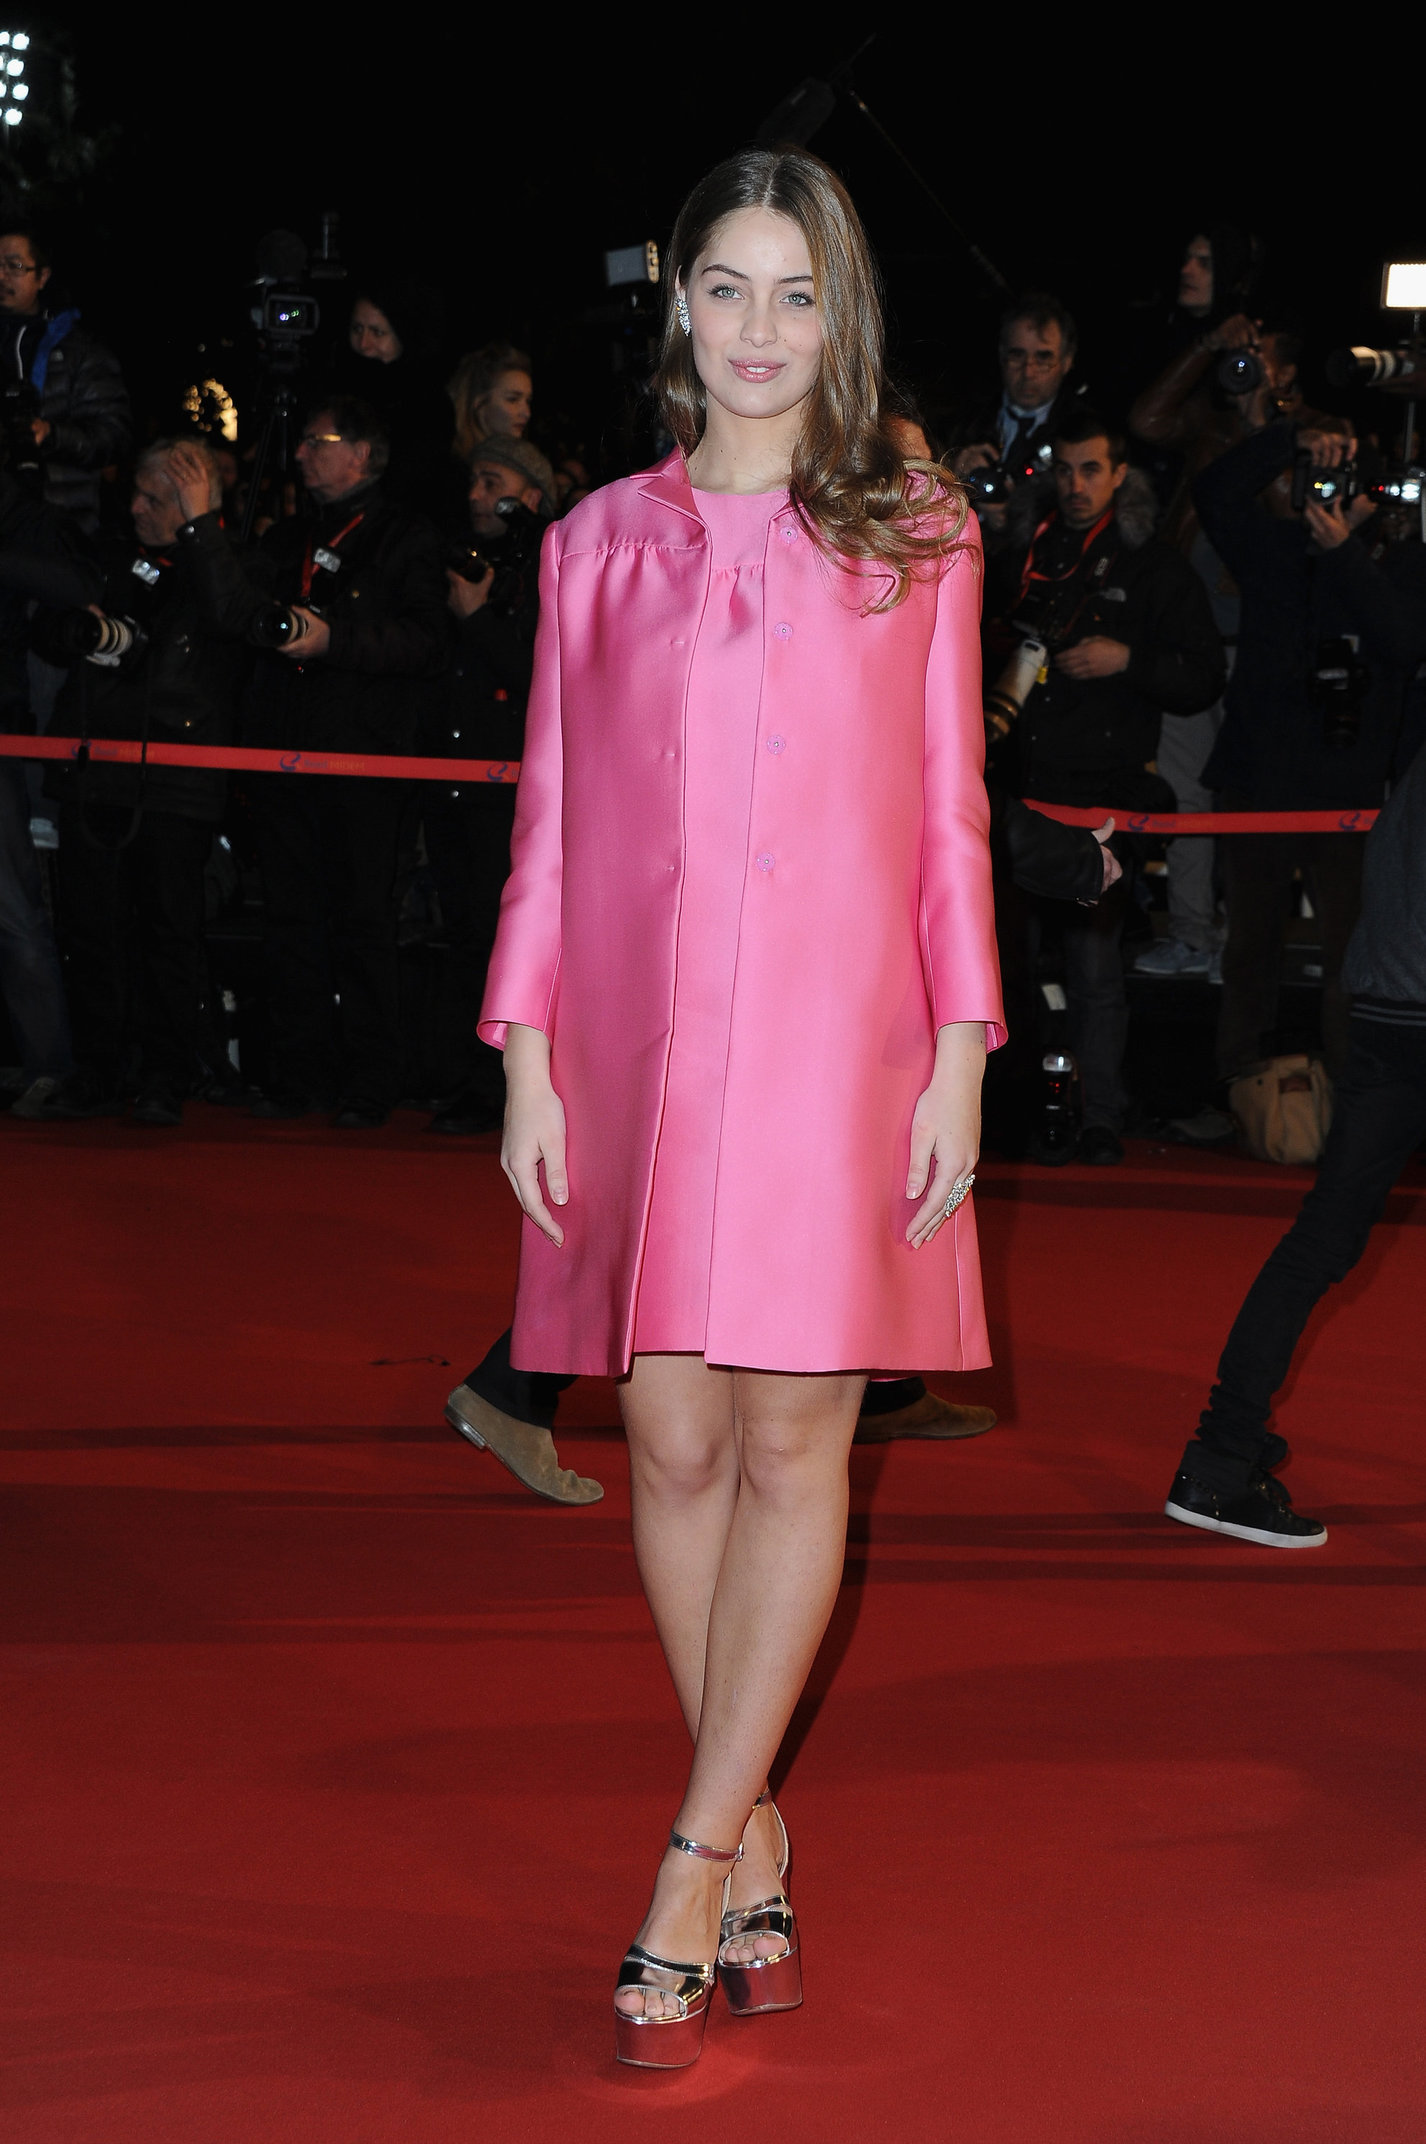 Marie Ange Casta 14th NRJ Music Awards in Cannes (Jan 26, 2013)